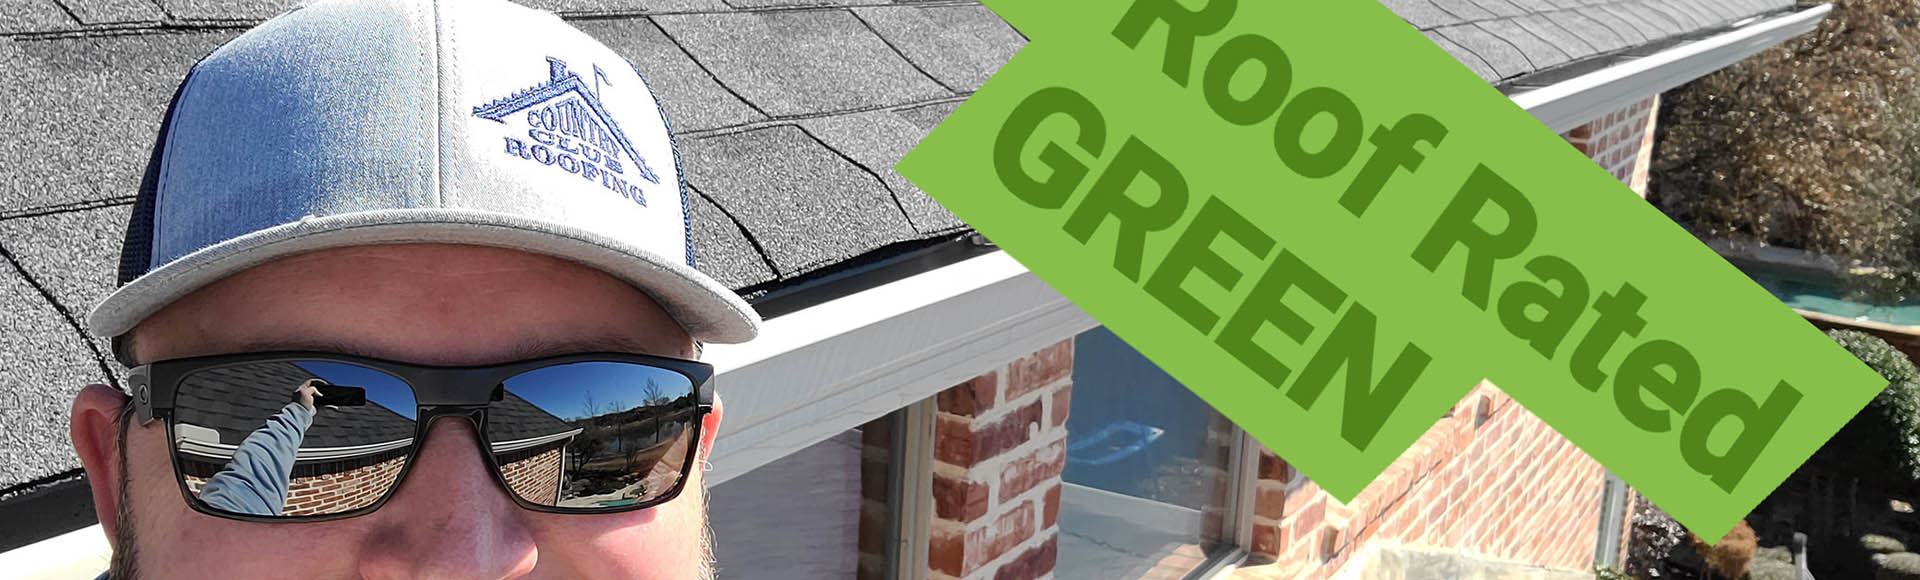 Allen General Contractor, Roofing Company and Roofing Contractor